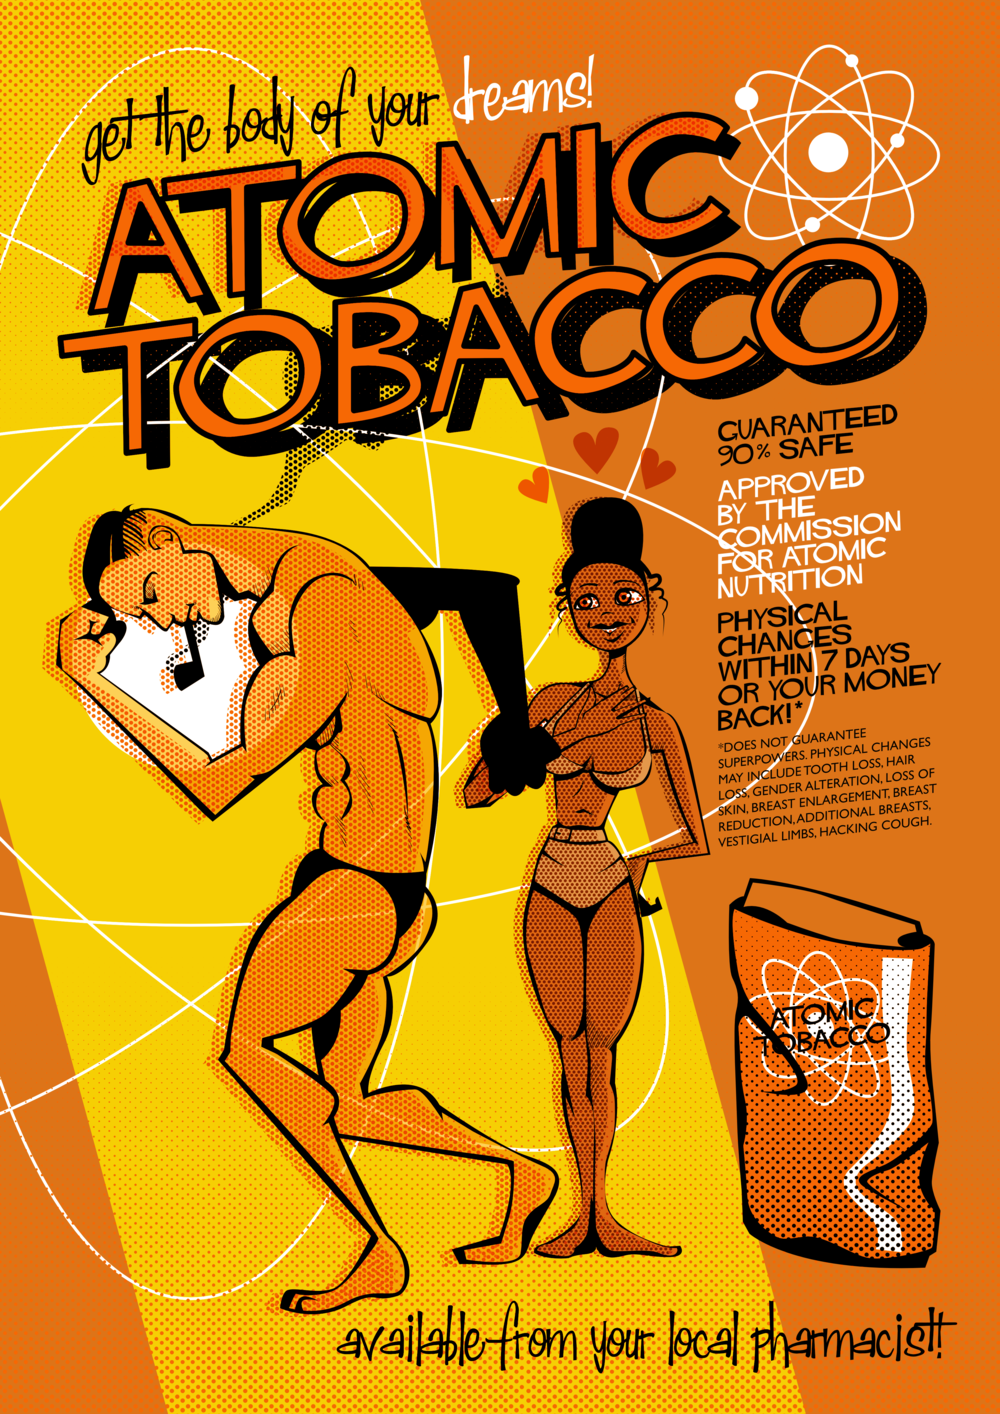 Atomic Tobacco